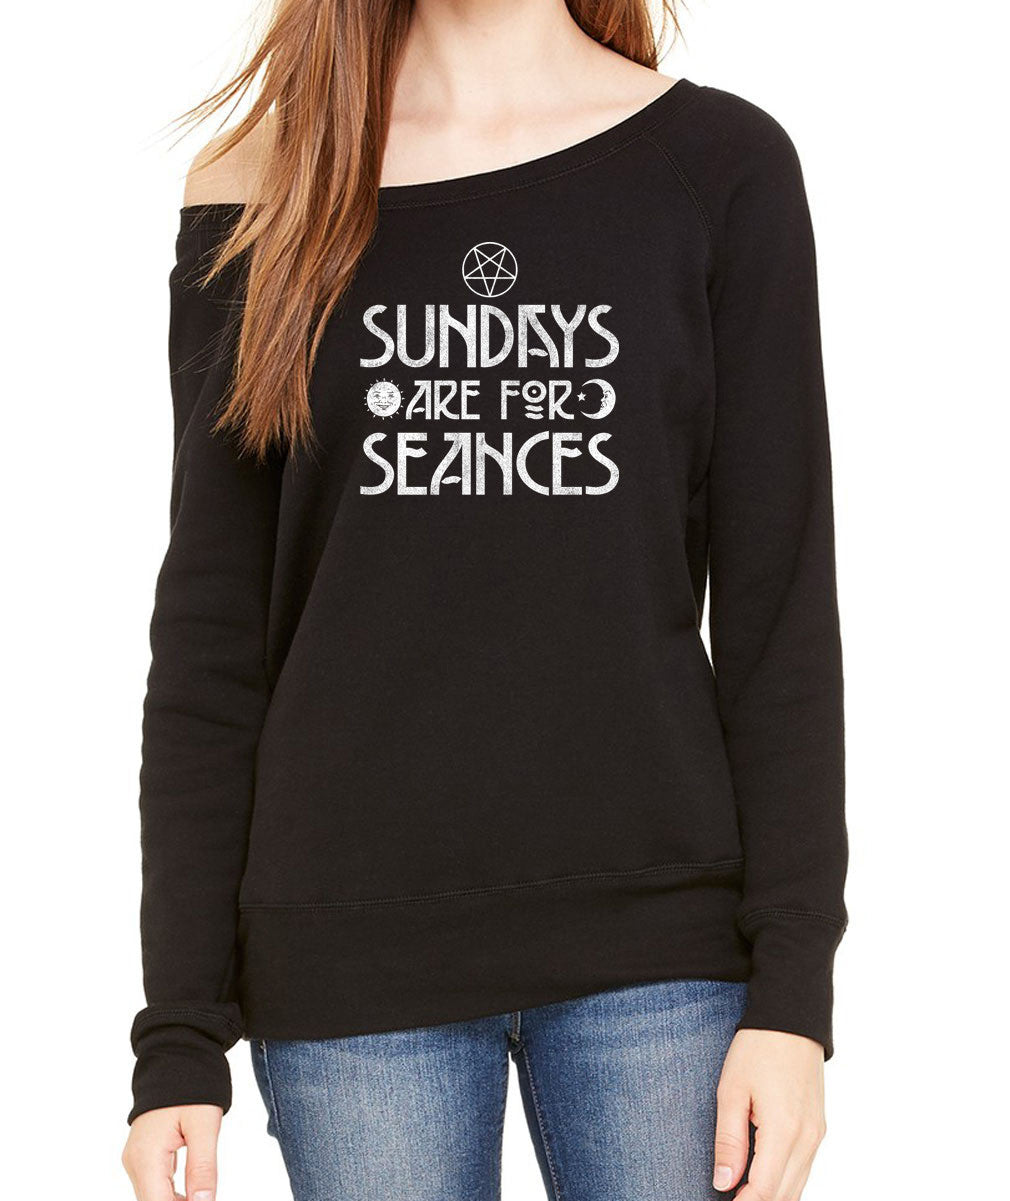 Women's Sundays are for Seances Scoop Neck Fleece